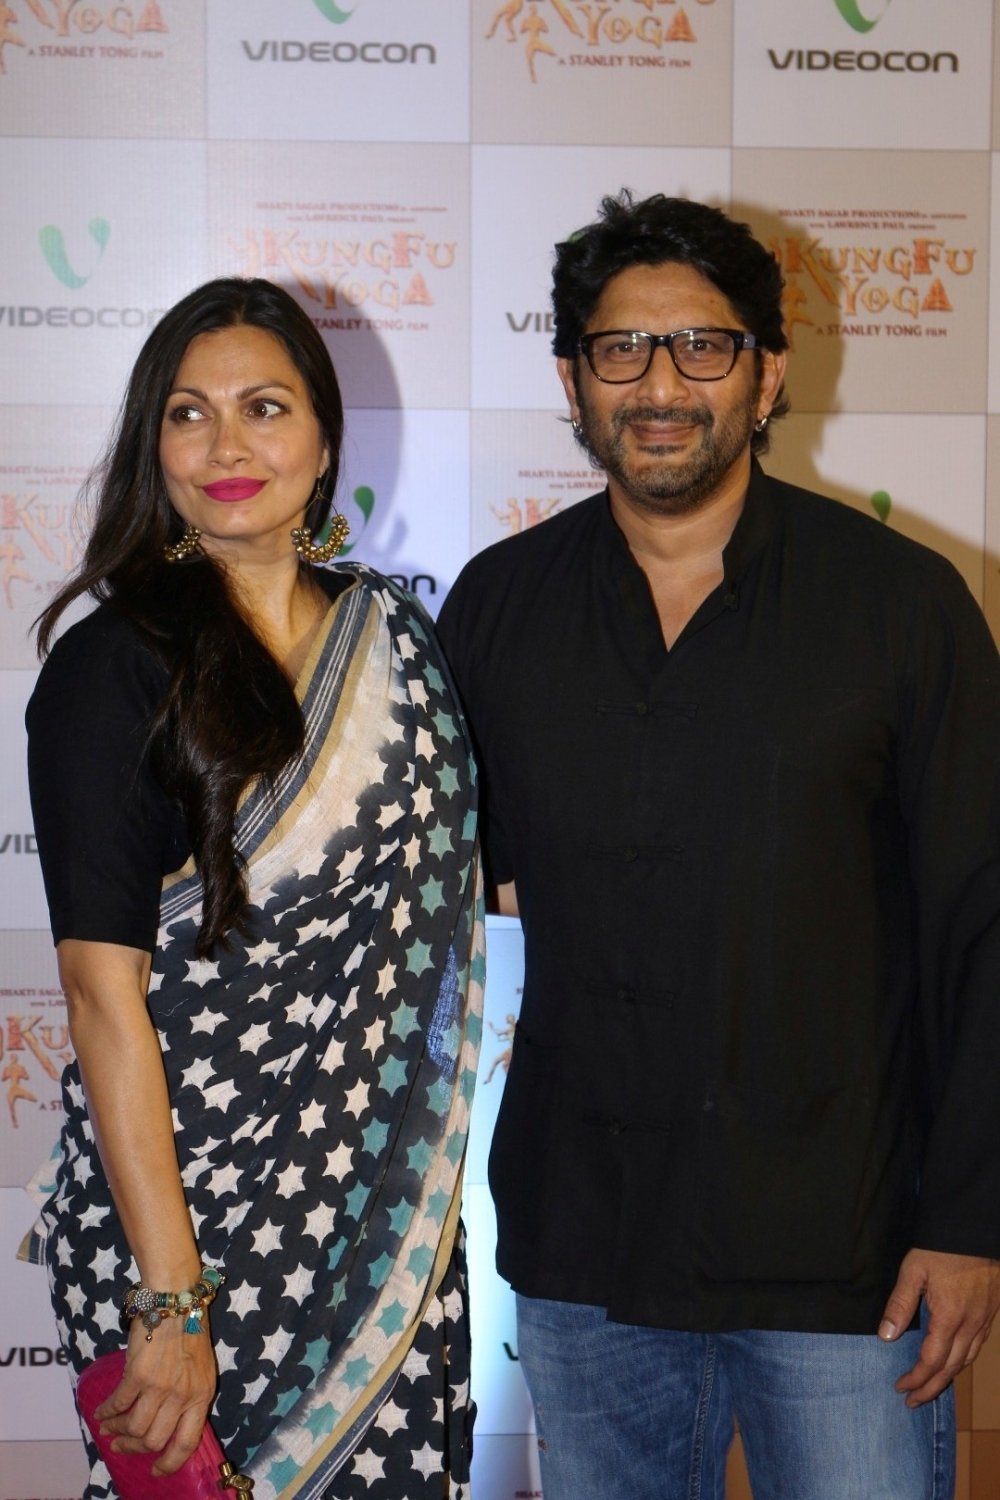 Mumbai: Actor Arshad Warsi along with his wife and actress Maria Goretti during the screening of film Kung Fu Yoga in Mumbai on Feb 2, 2017. (Photo: IANS)